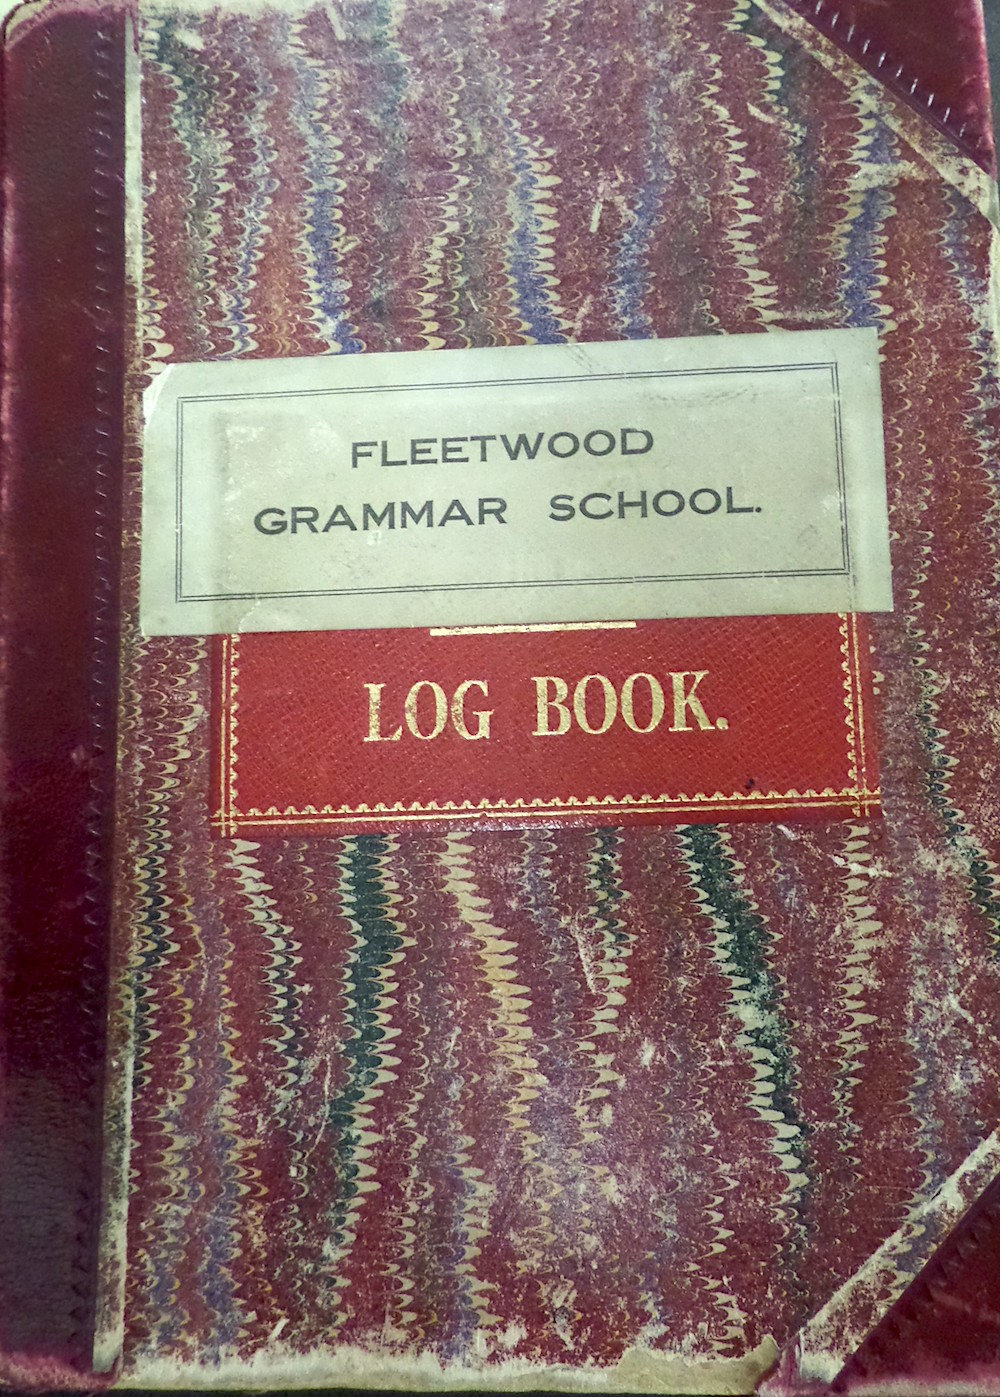 Fleetwood Grammar School Logbook Courtesy of Lancashire Archives, Archive ref: SMFL 1/1